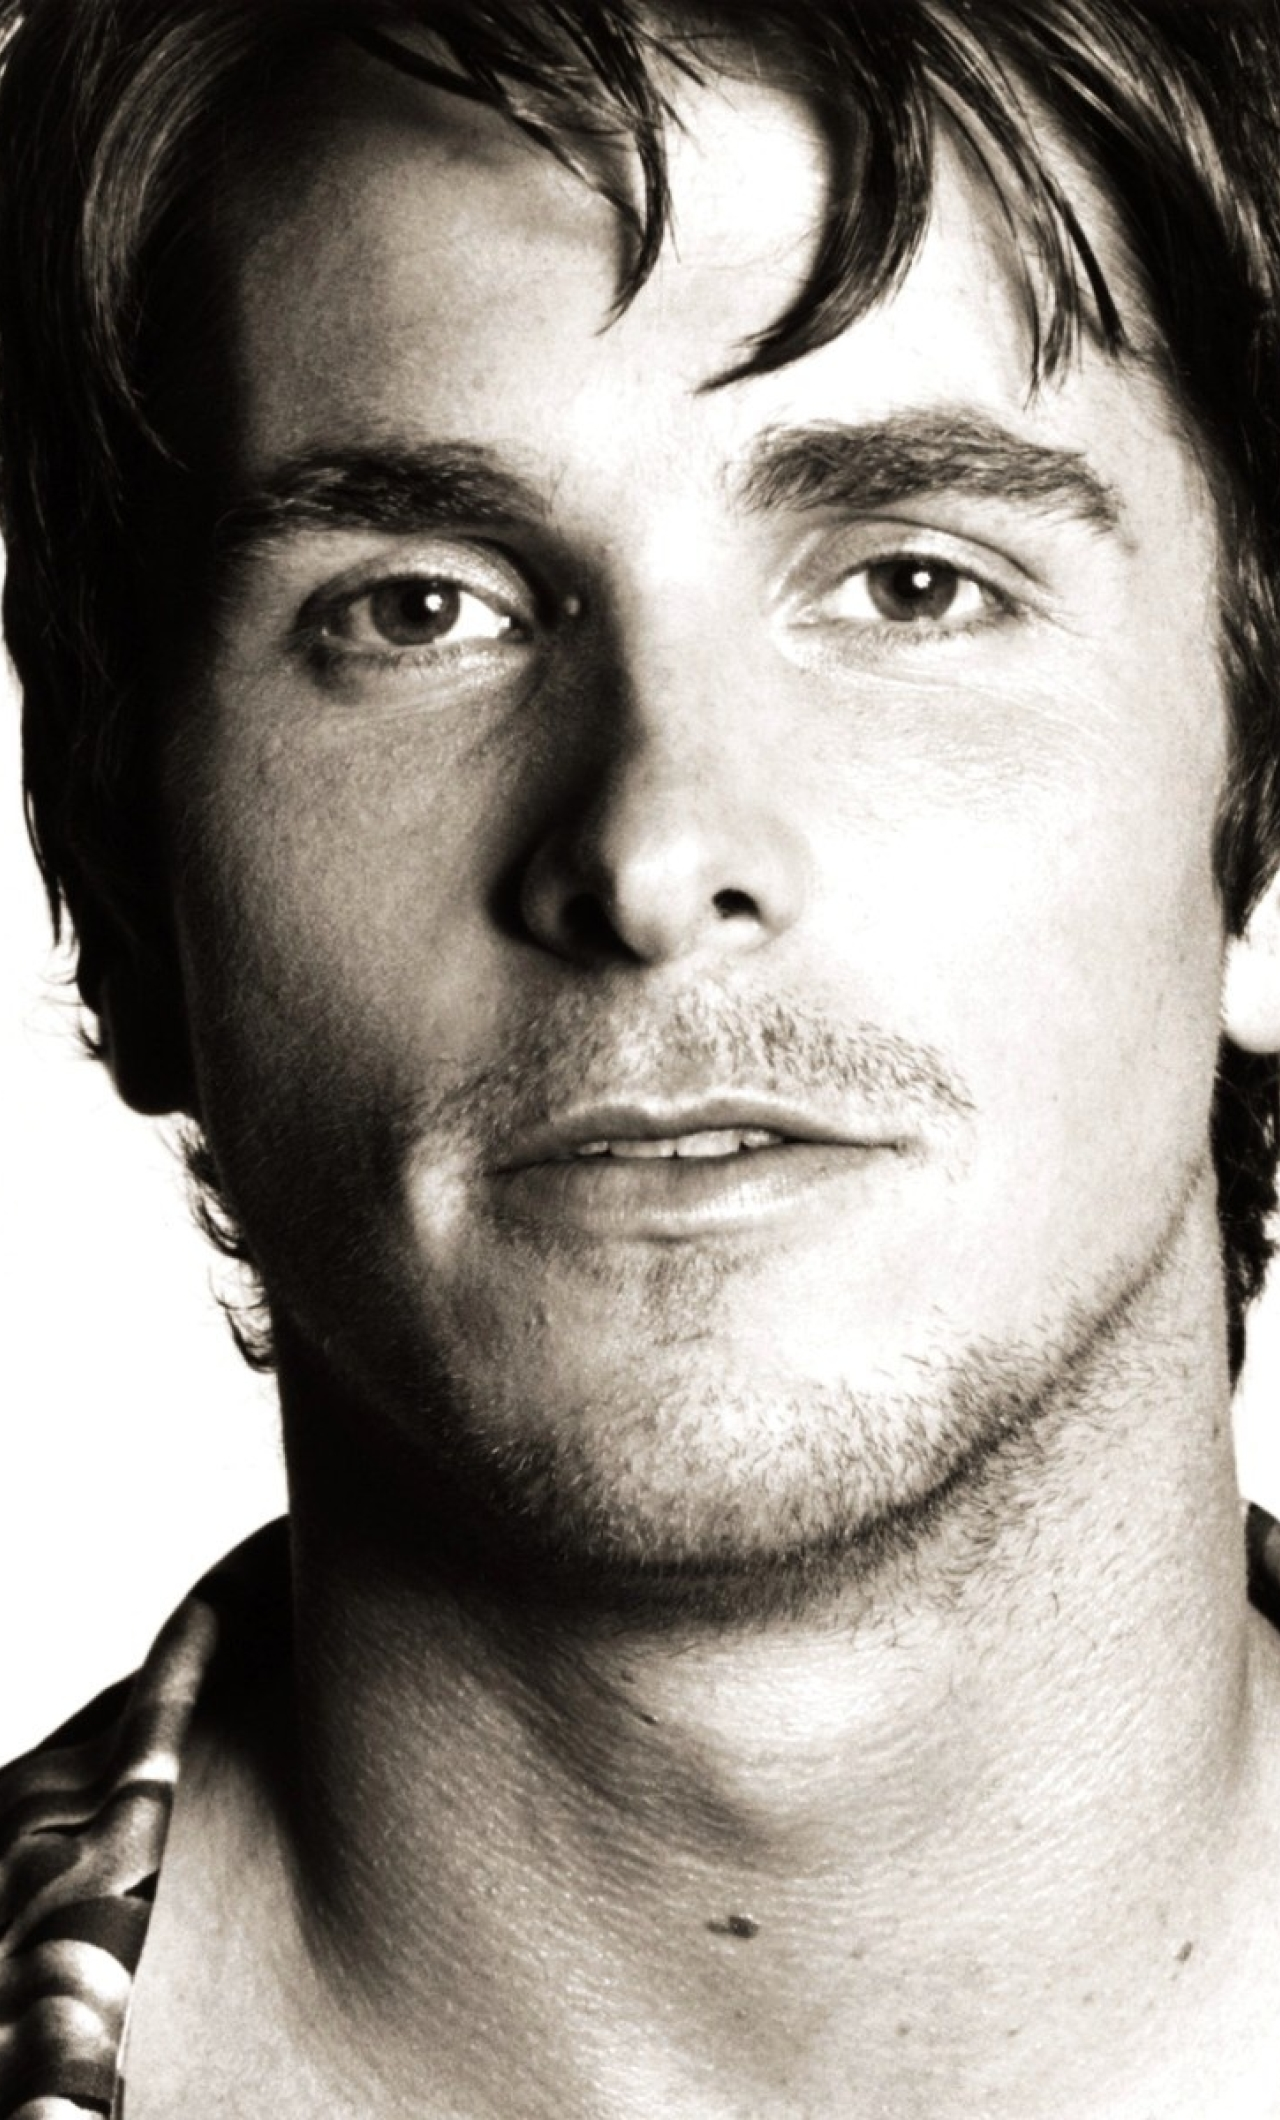 Download Christian Bale Photoshoot 240x400 Rk 2 Rs